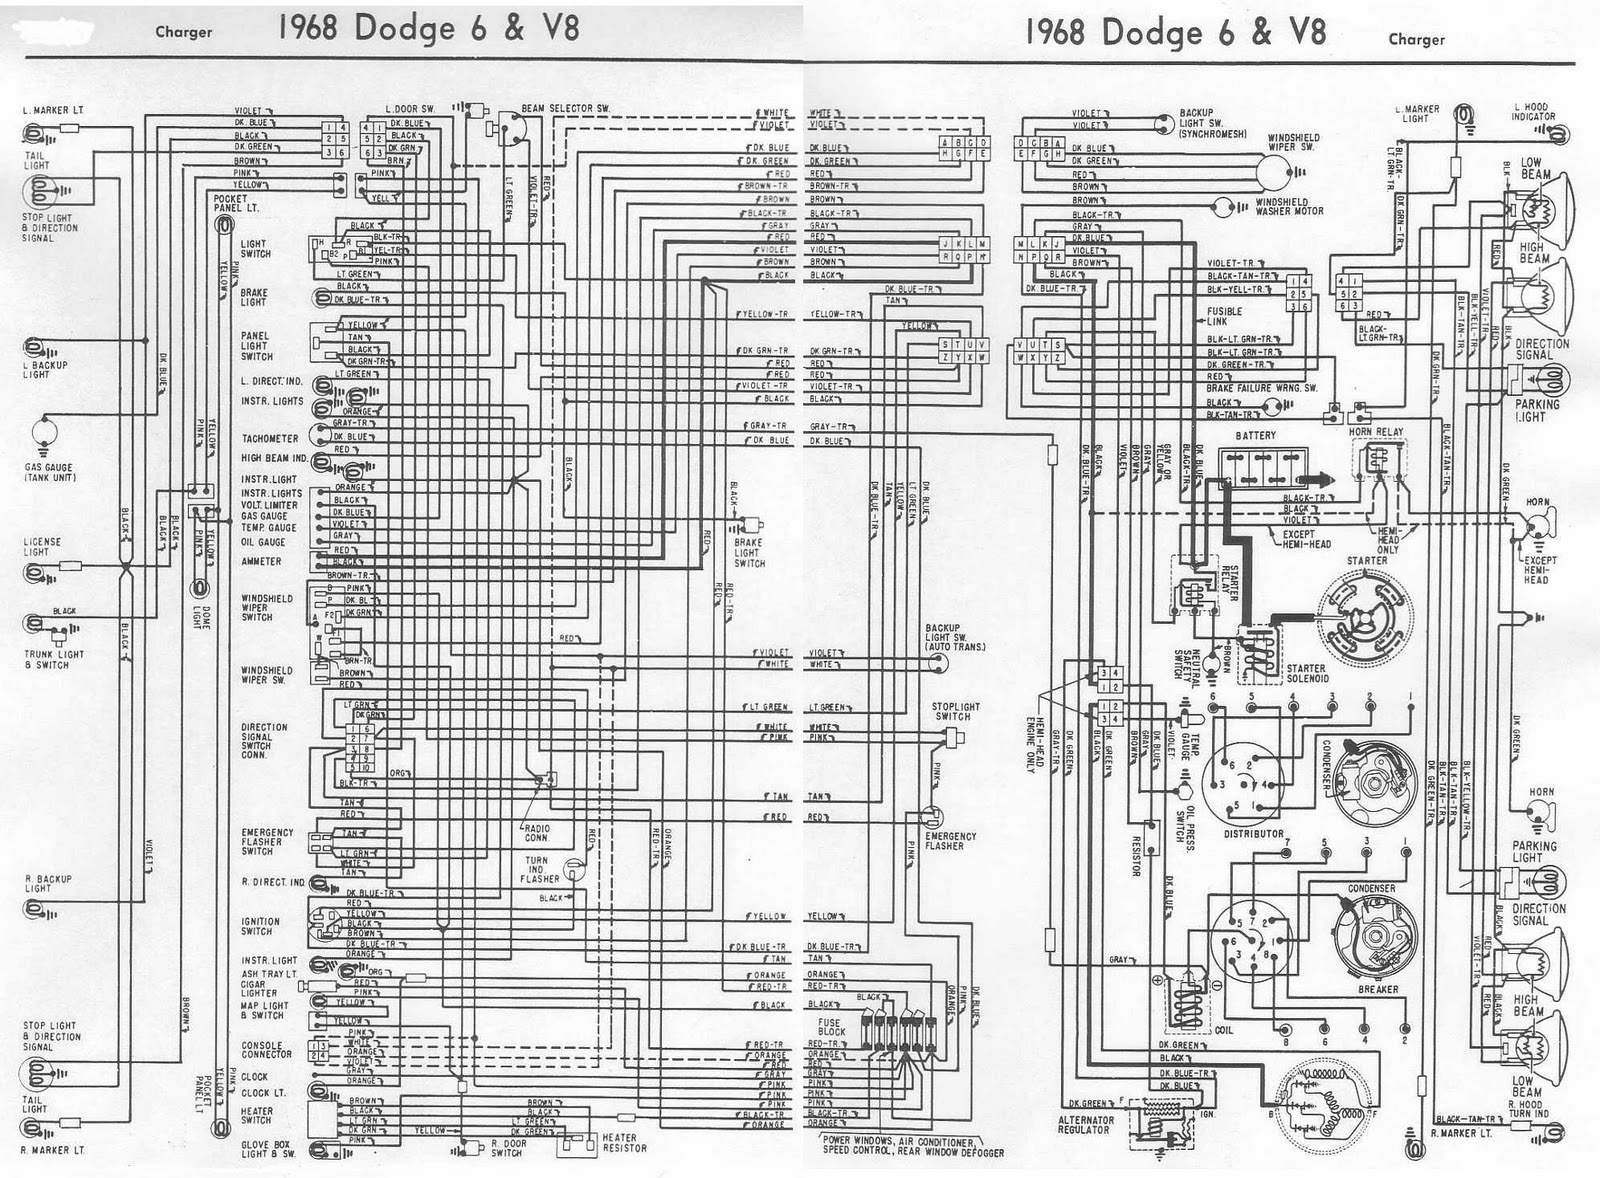 wiring diagram dodge polara 1967 wiring wiring diagrams online dodge charger 1968 6 and v8 complete electrical wiring diagram